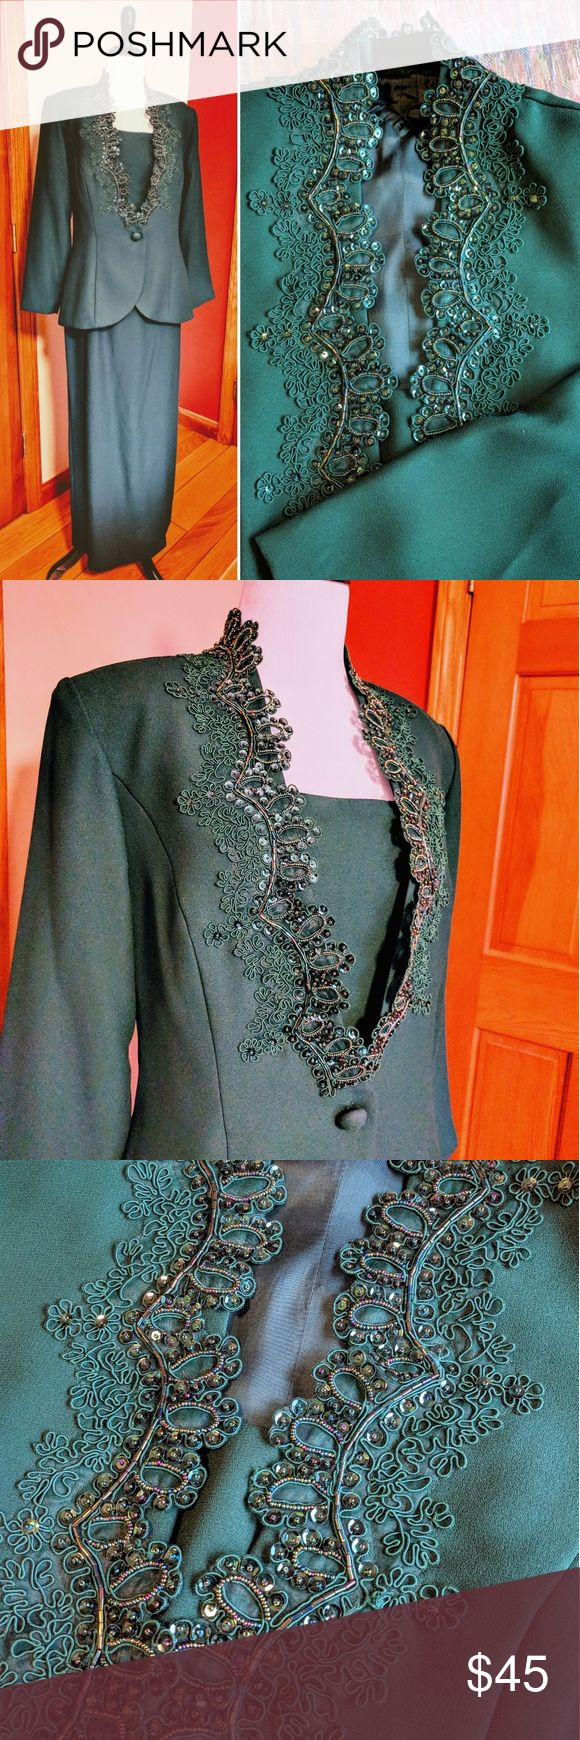 """Vintage hunter green evening gown with jacket Gorgeous dark hunter green vintage dress with jacket. Dress itself is in perfect condition. The jacket has a few missing beads and sequins, but not noticeable unless you carefully look for them (see last picture with me pointing, one area by the neck in the back, one in the front halfway down the side), imperfections reflected in price. Helen Murrell tag attached to inside jacket by safety pin. Jacket 18"""" flat across pit to pit, 16"""" waist, 27""""…"""